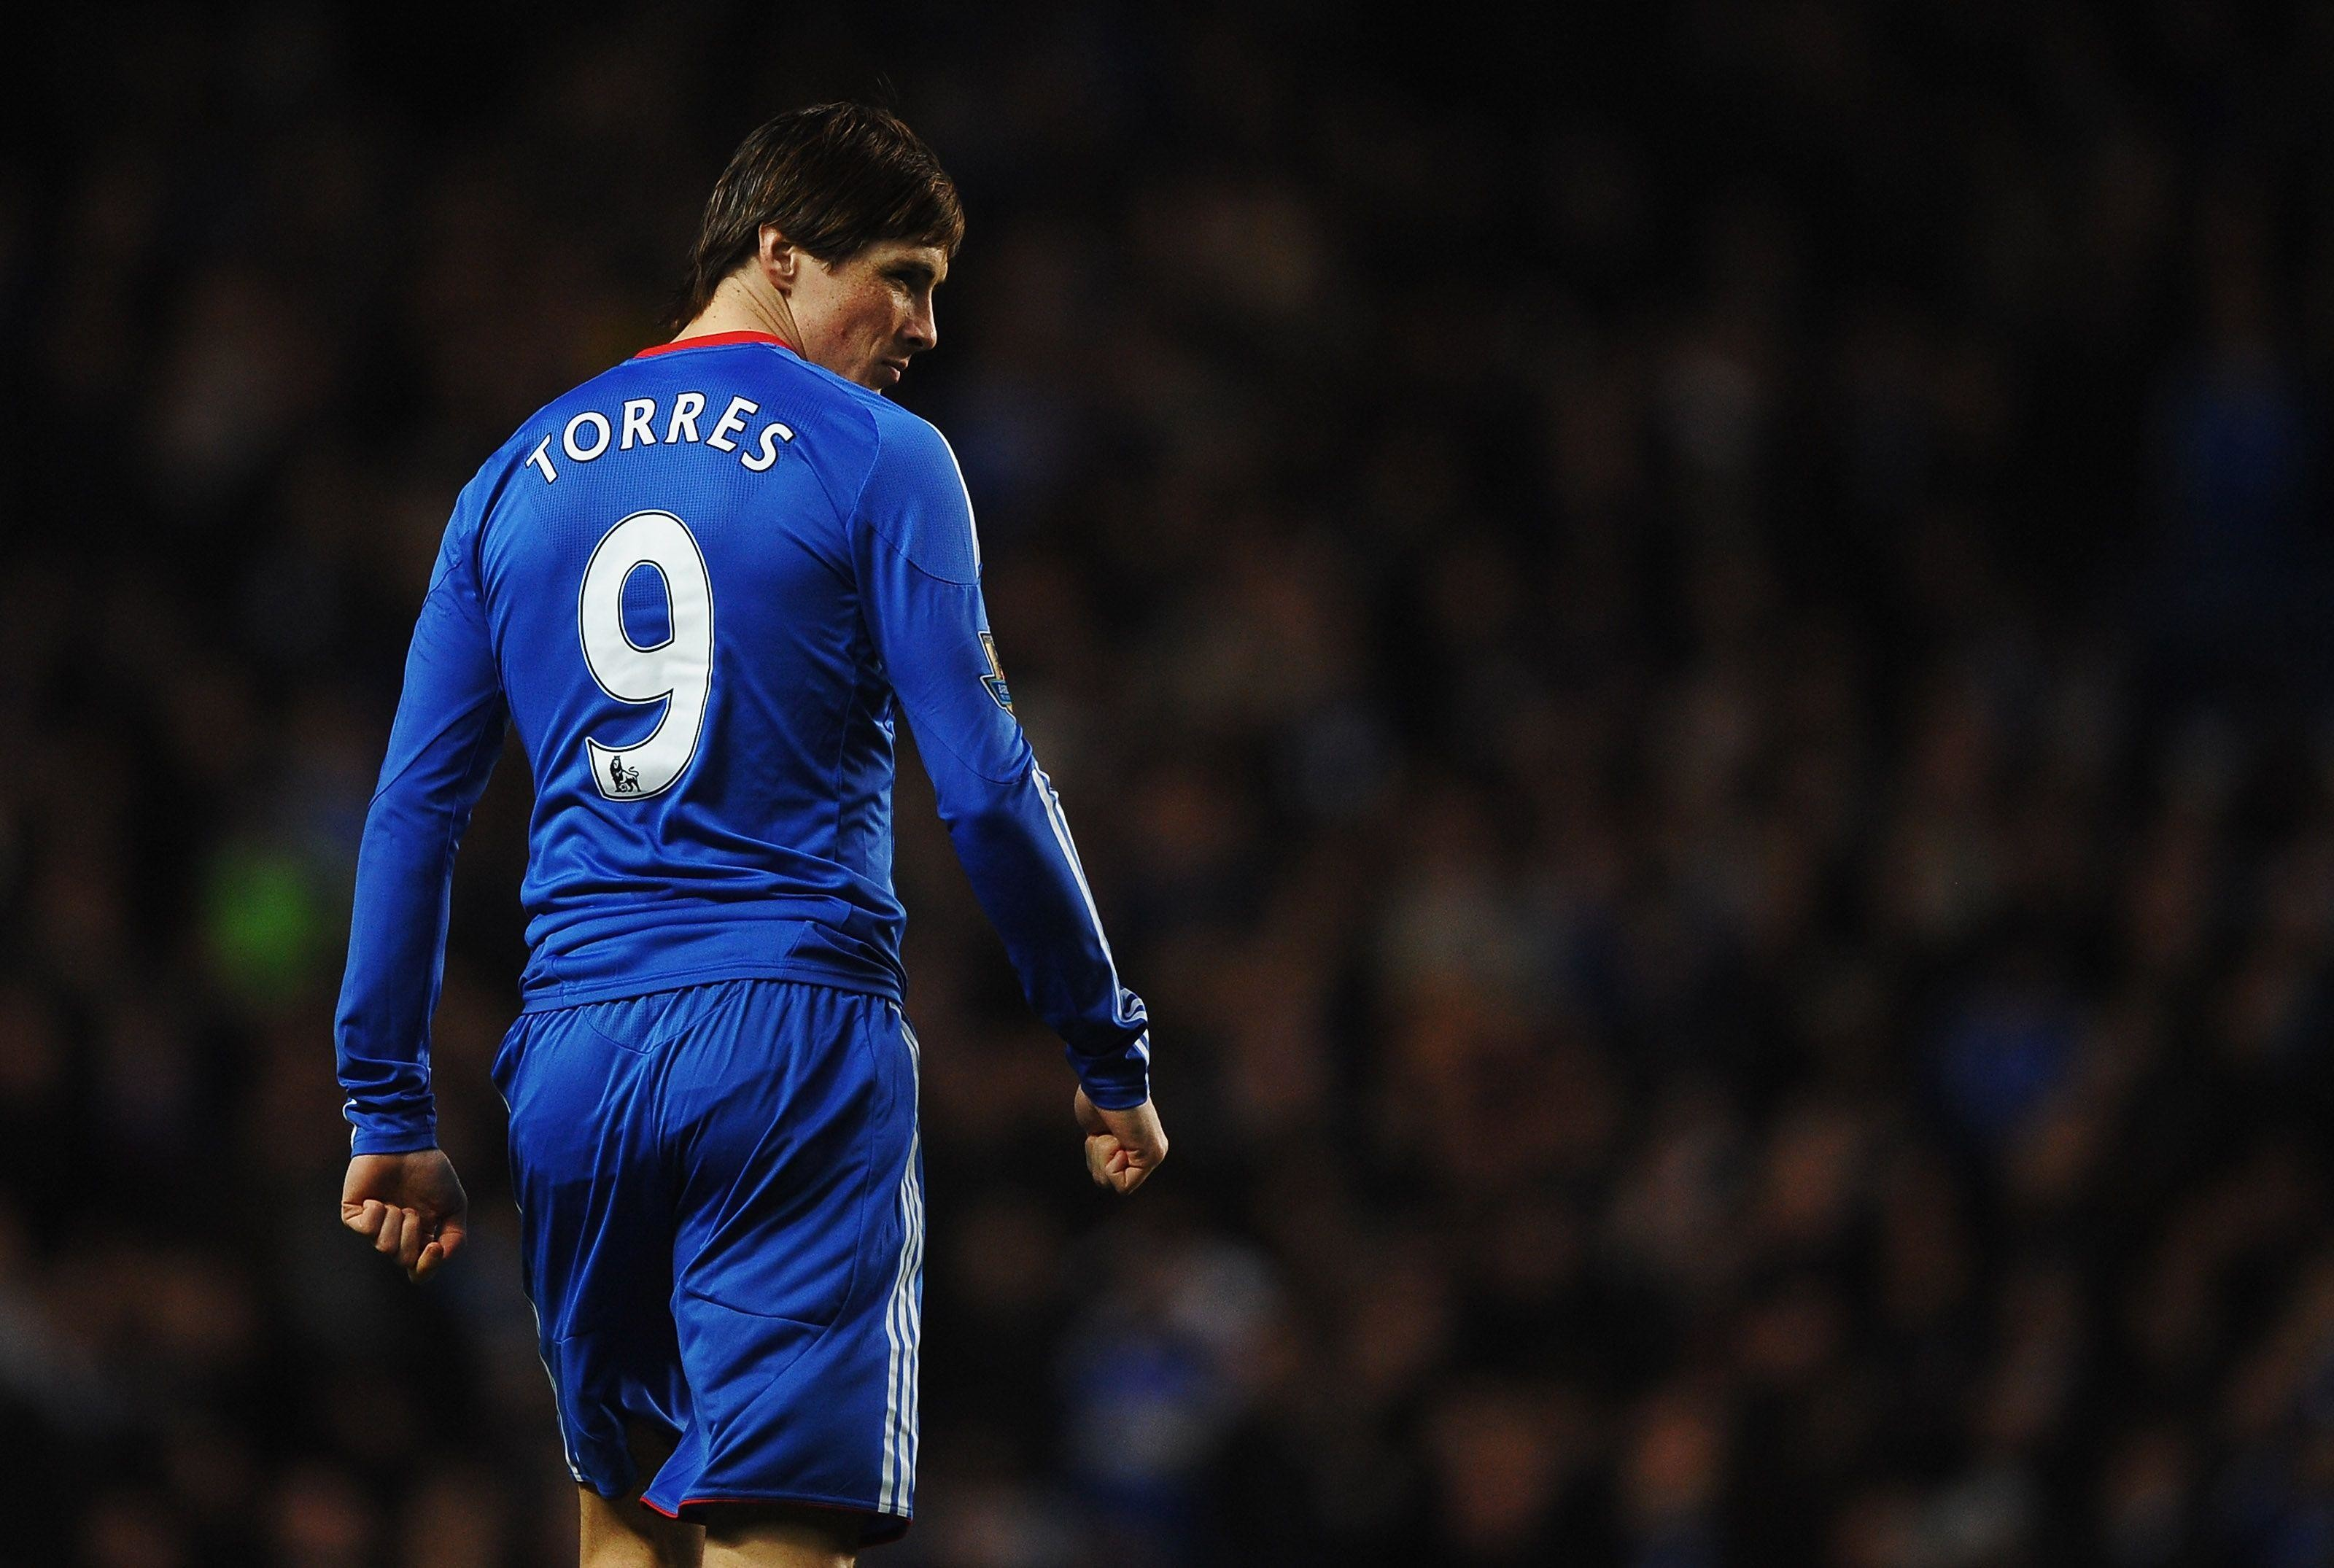 3200x2150 Fernando Torres Hd Wallpapers Wallpaper Cave Football World Fernando Torres Chelsea Striker Hd Wallpapers 2012